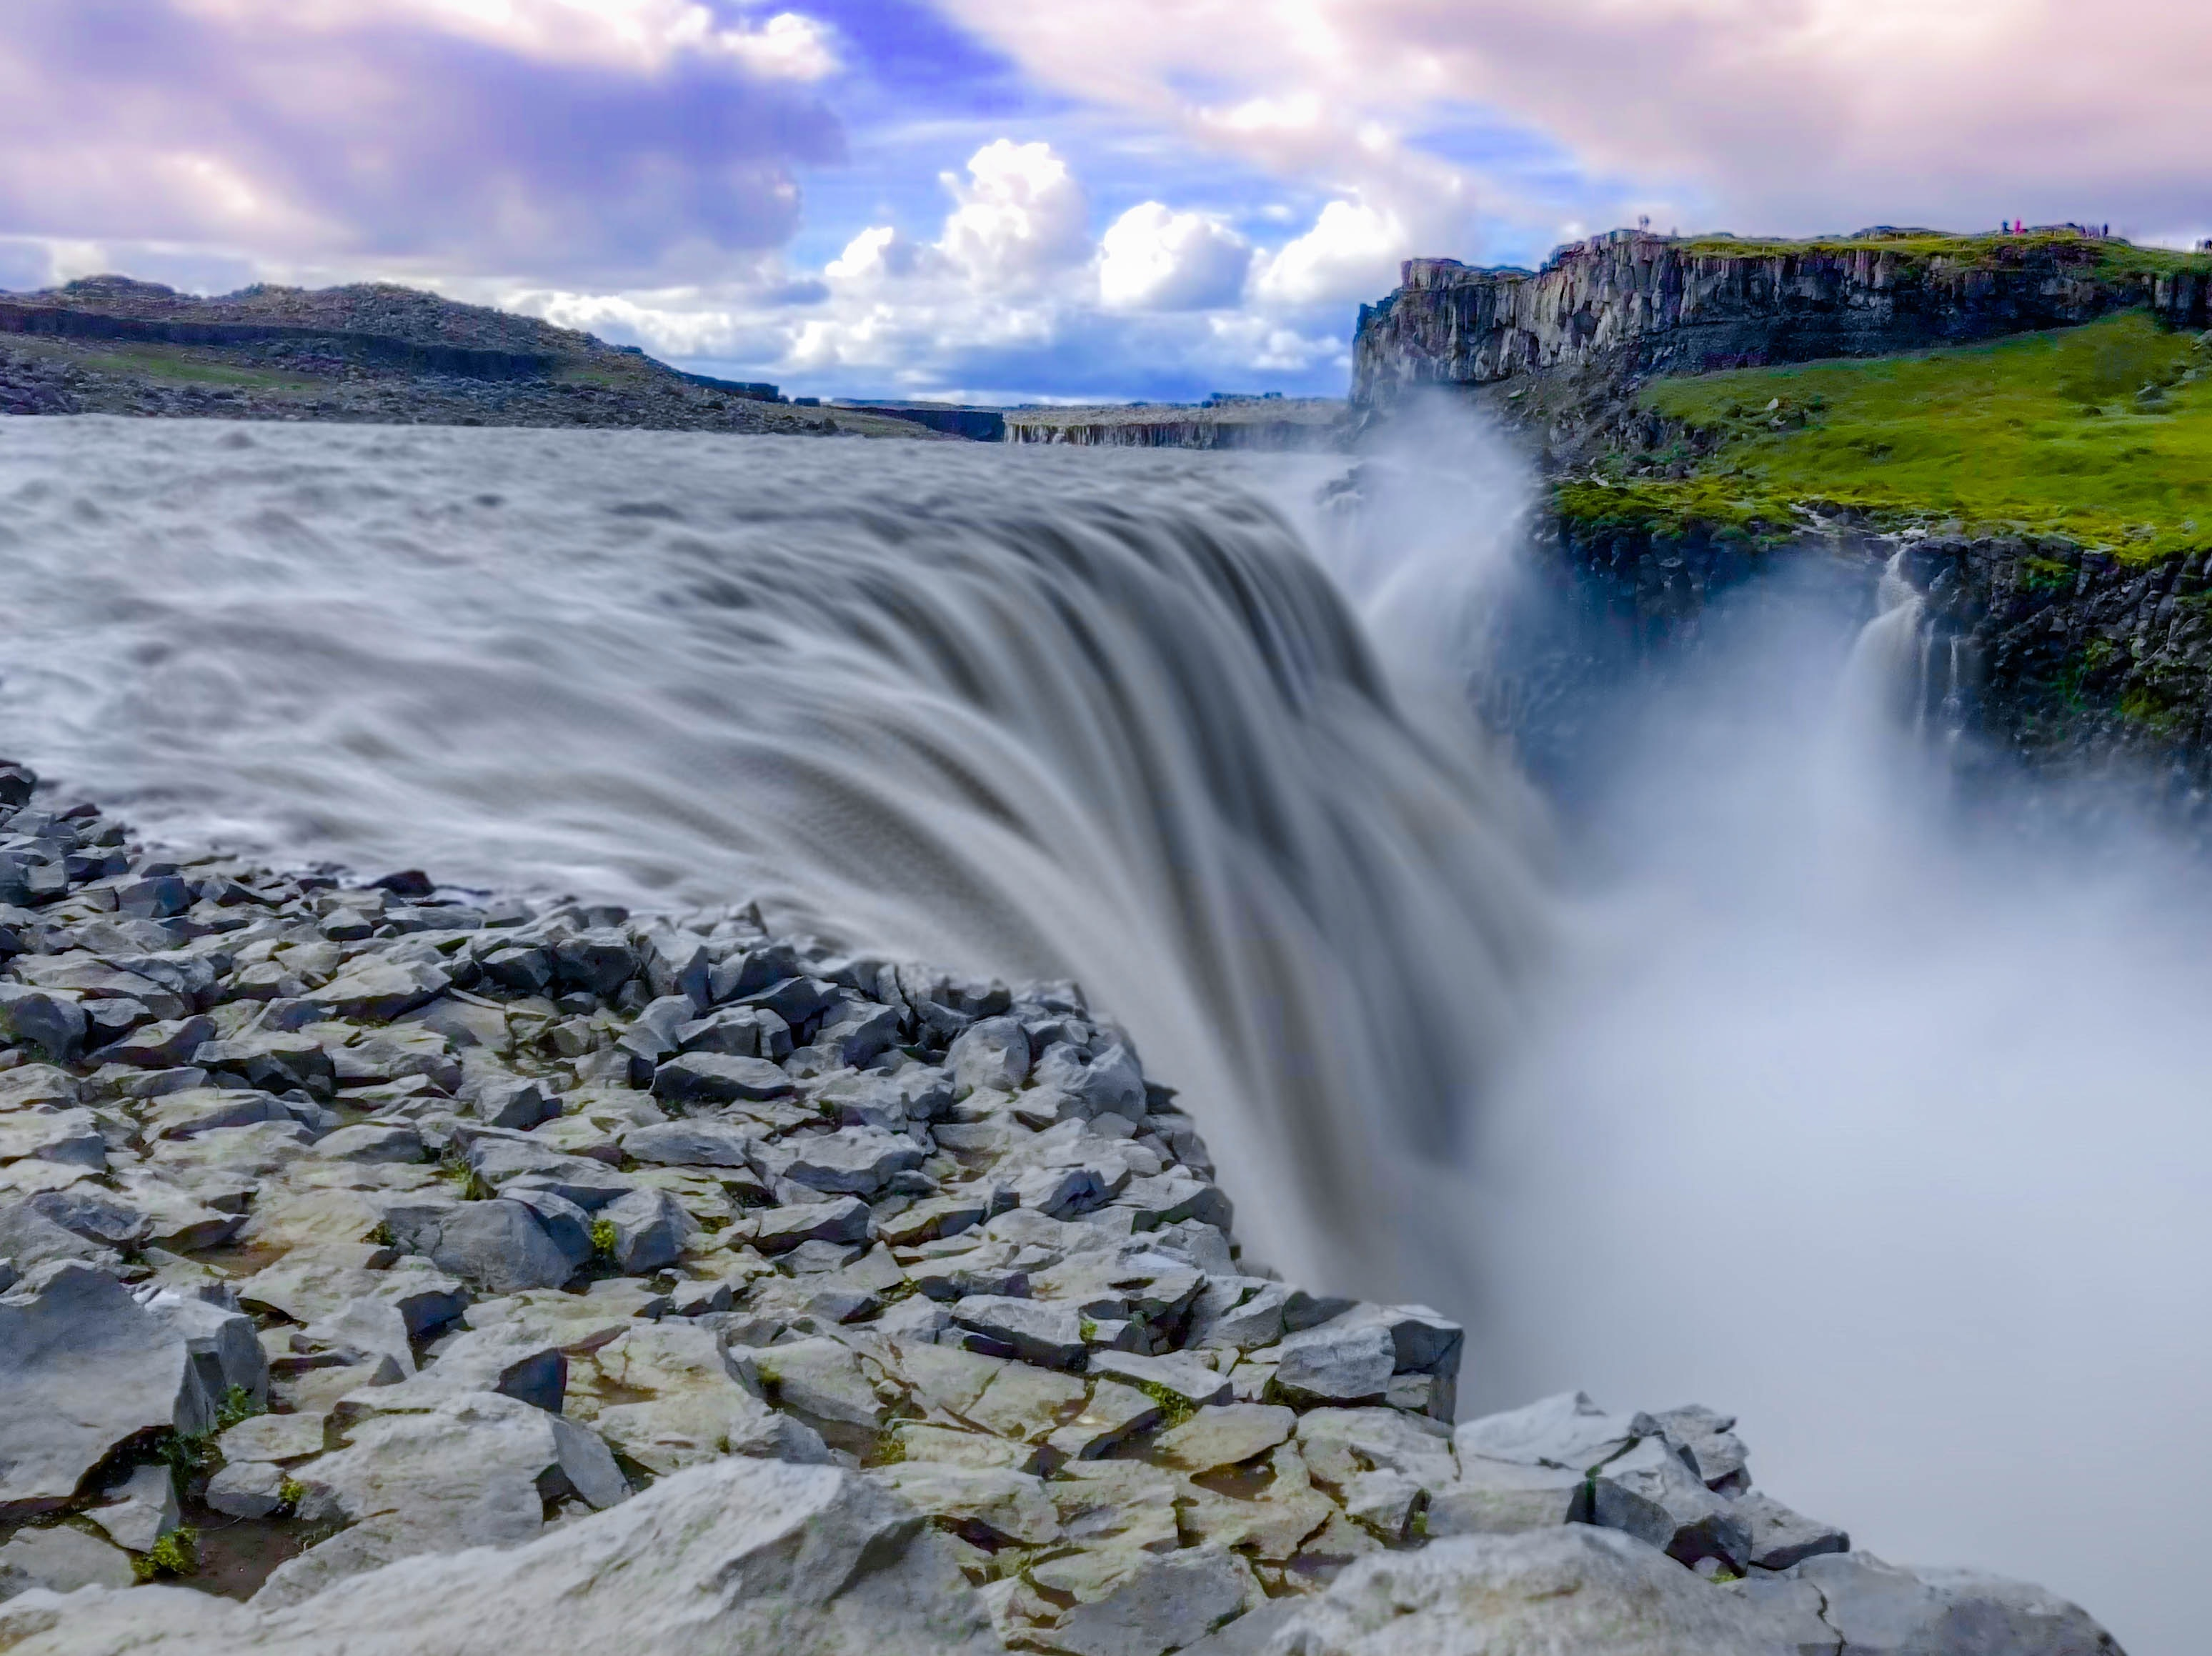 Dettifoss at its full discharge